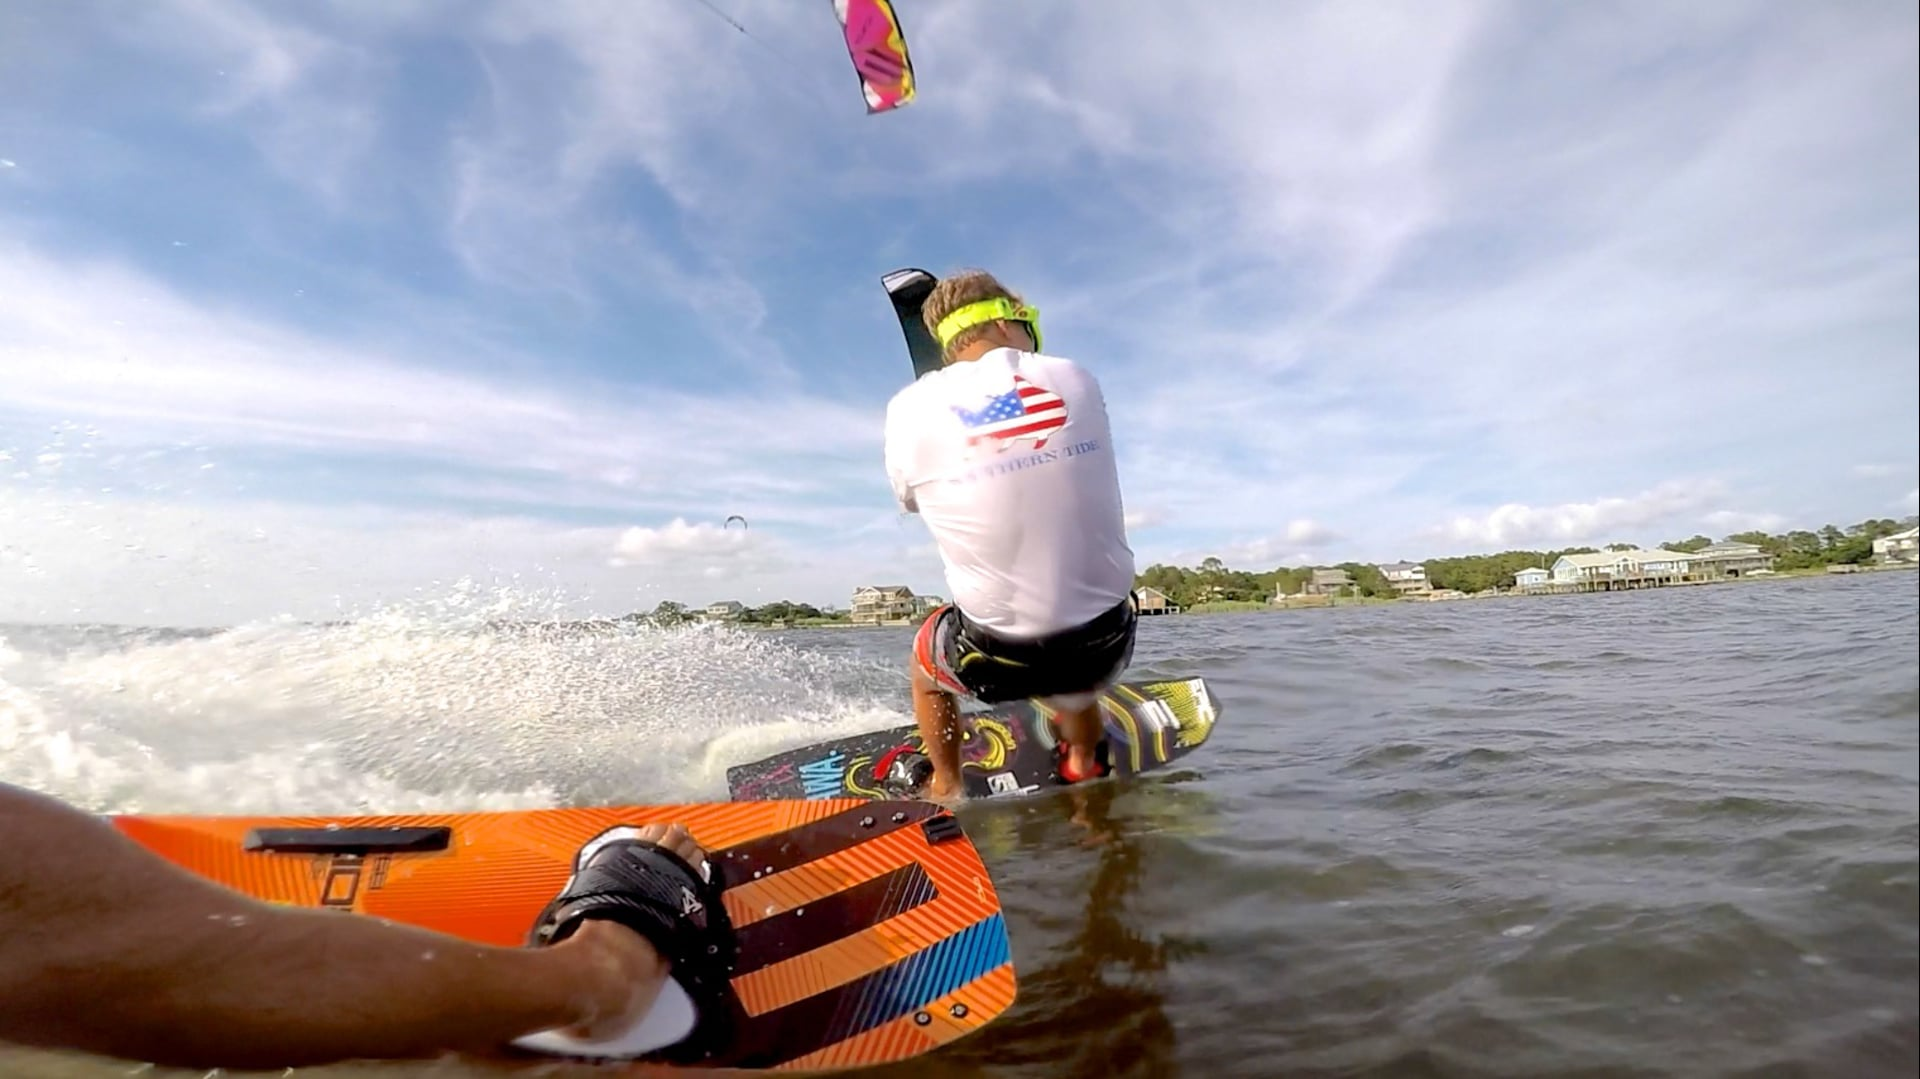 Father & Son kiteboarding racing - with Epic Kites Kiteboarding